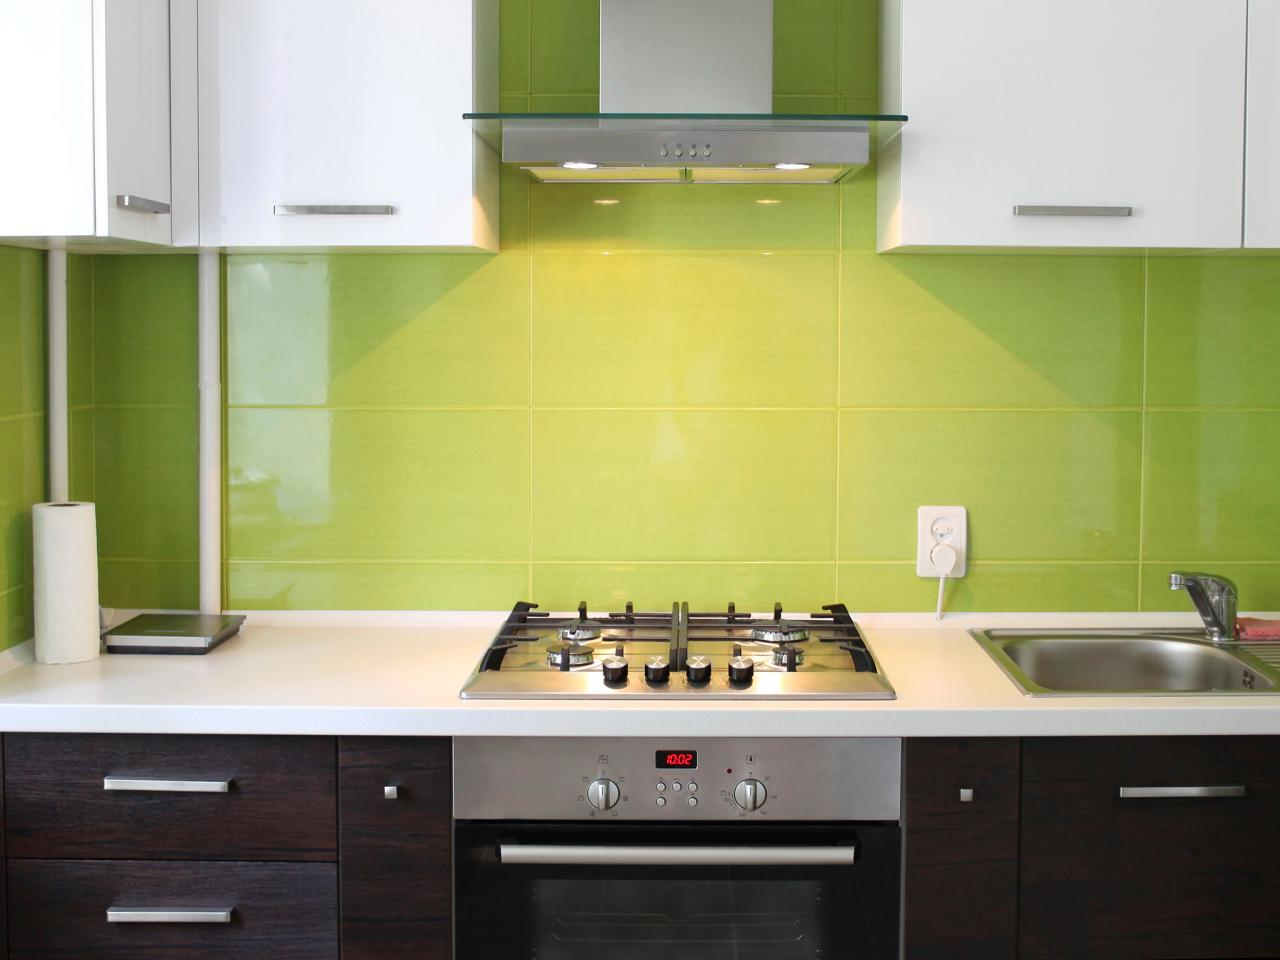 Kitchen color trends pictures ideas expert tips hgtv - Pintura para pintar azulejos de cocina ...